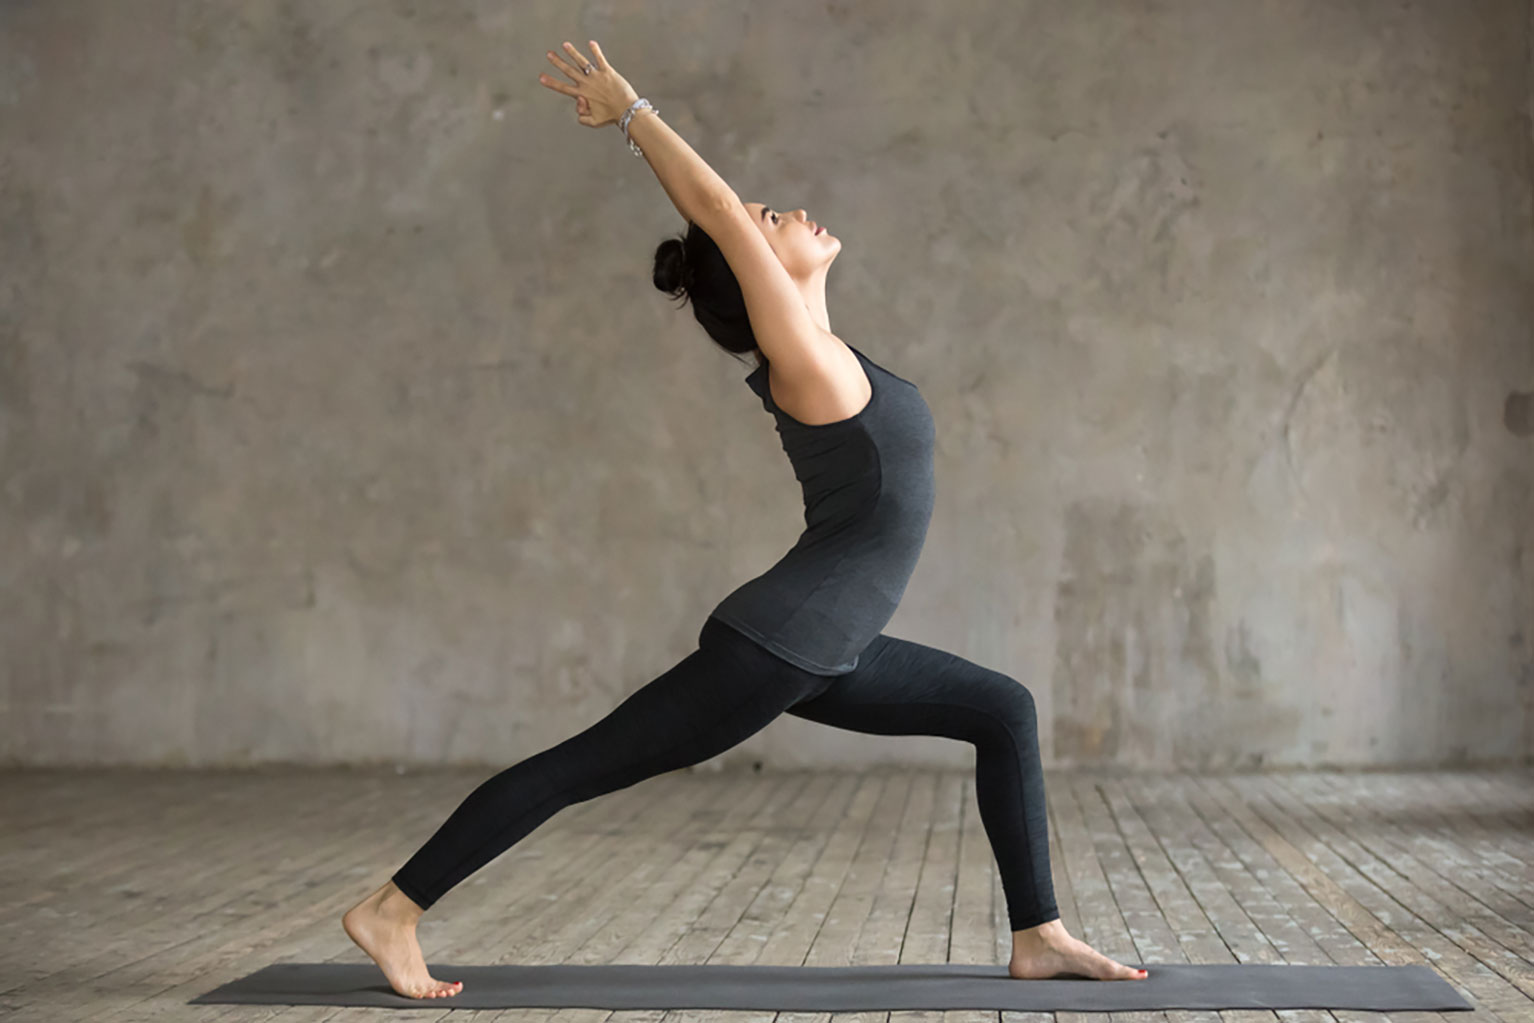 Young woman practicing the high lunge yoga pose